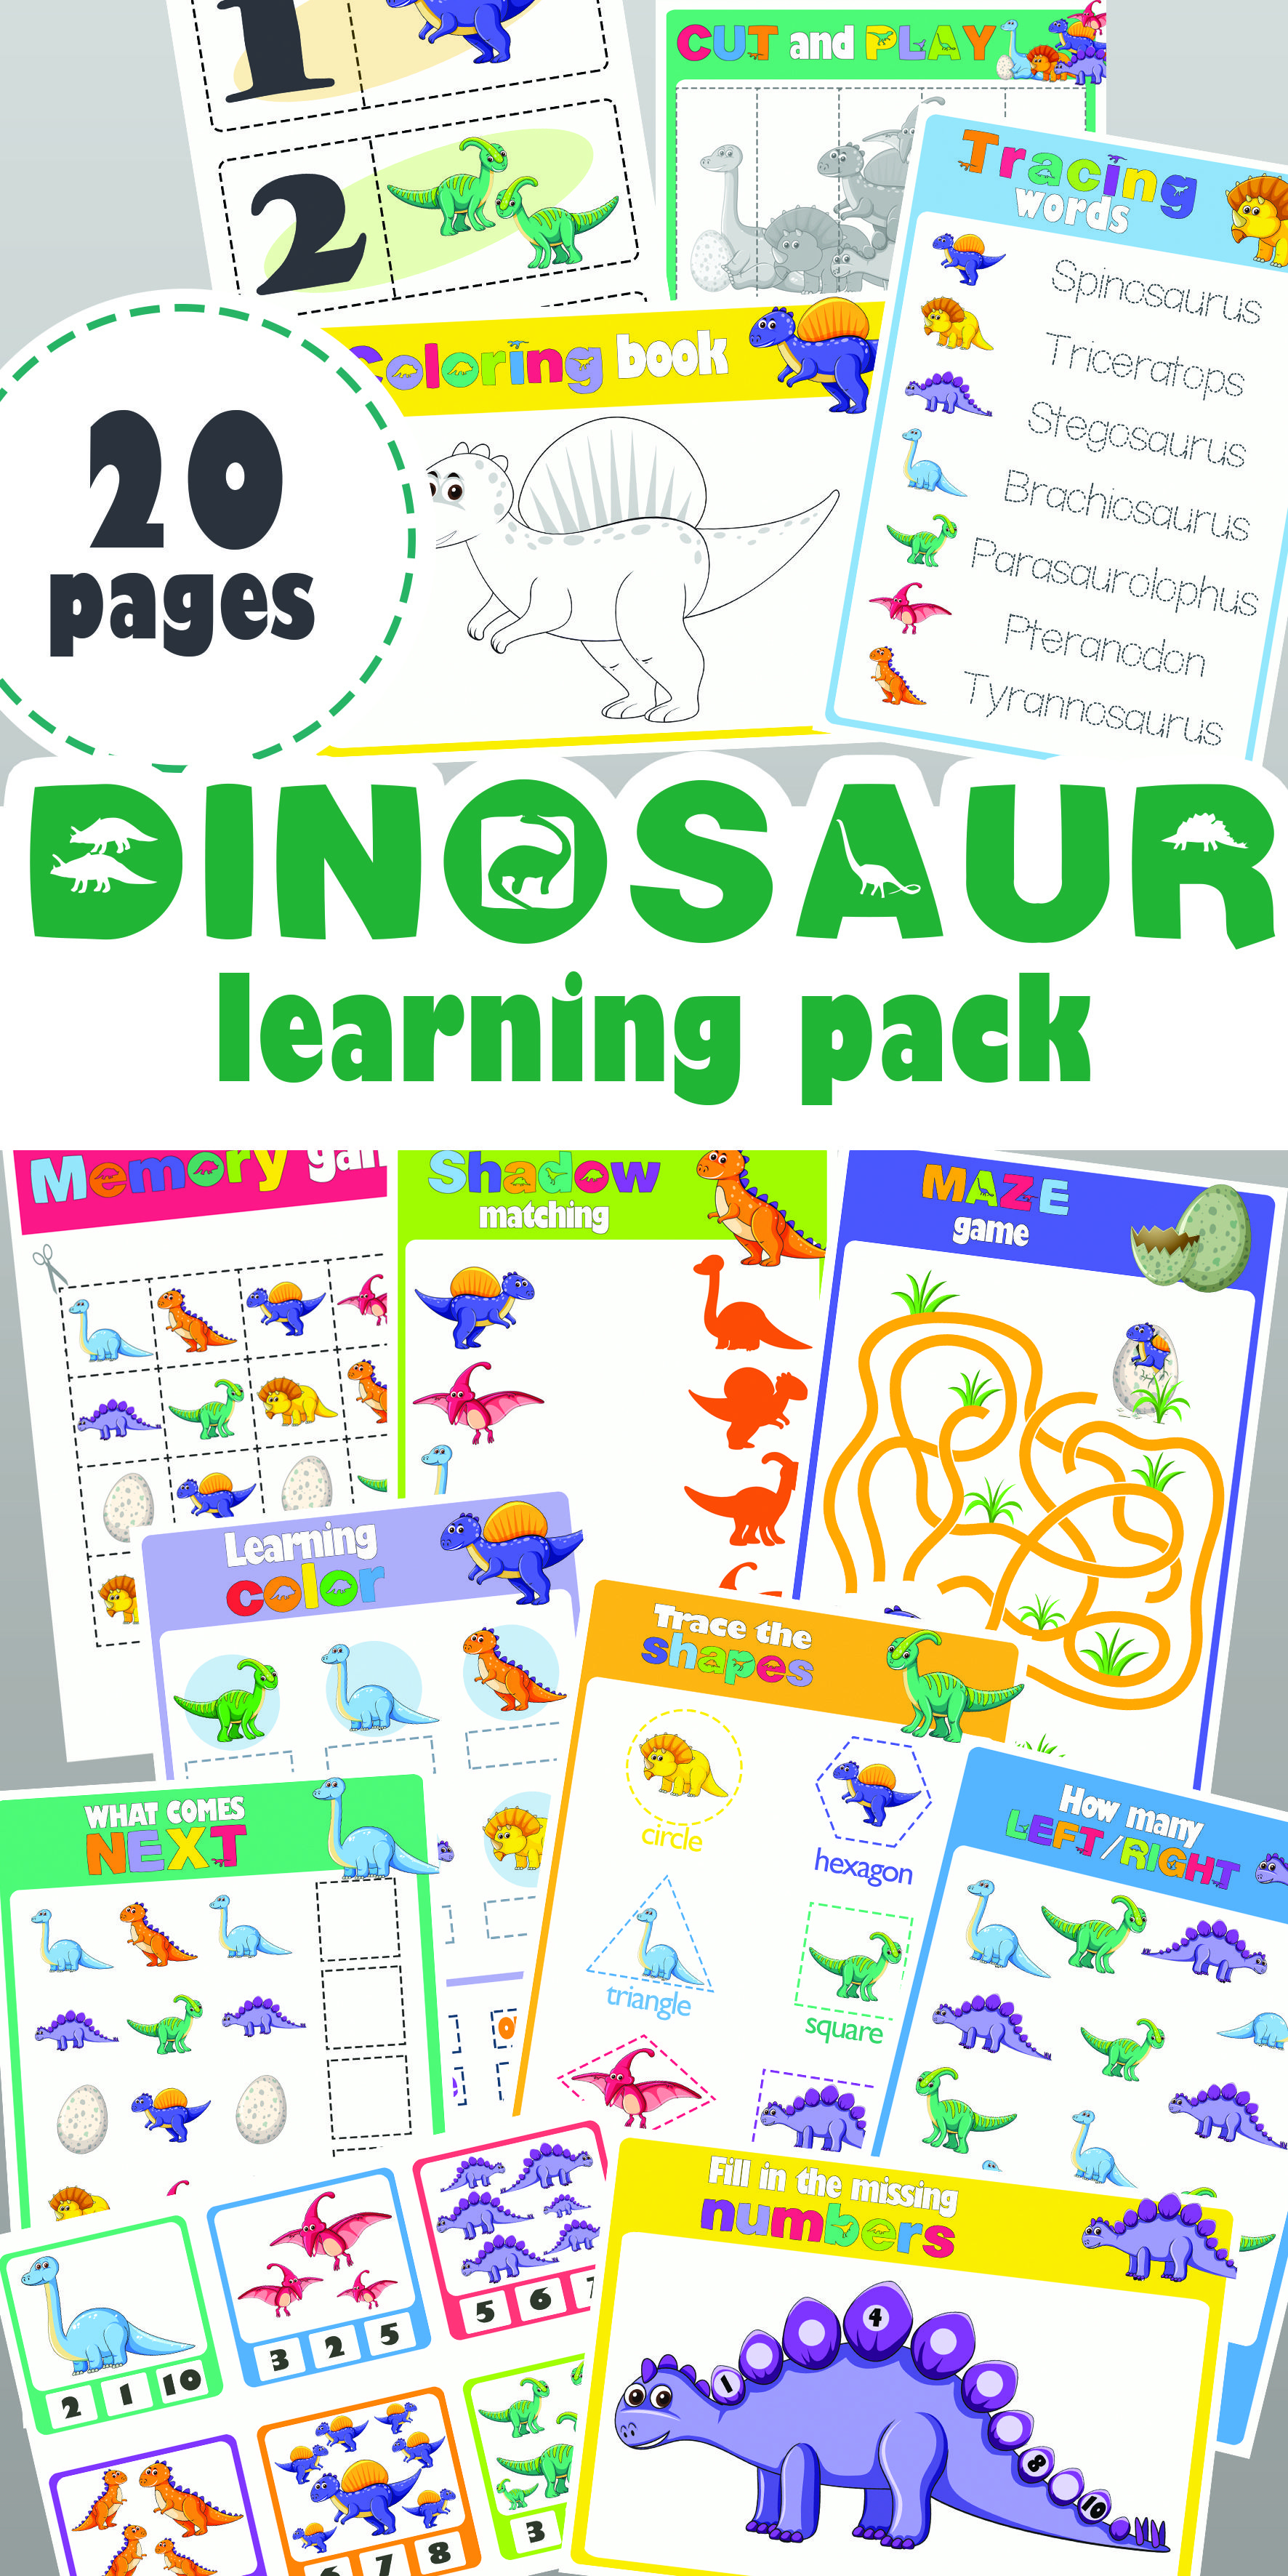 Dinosaur Learning Pack